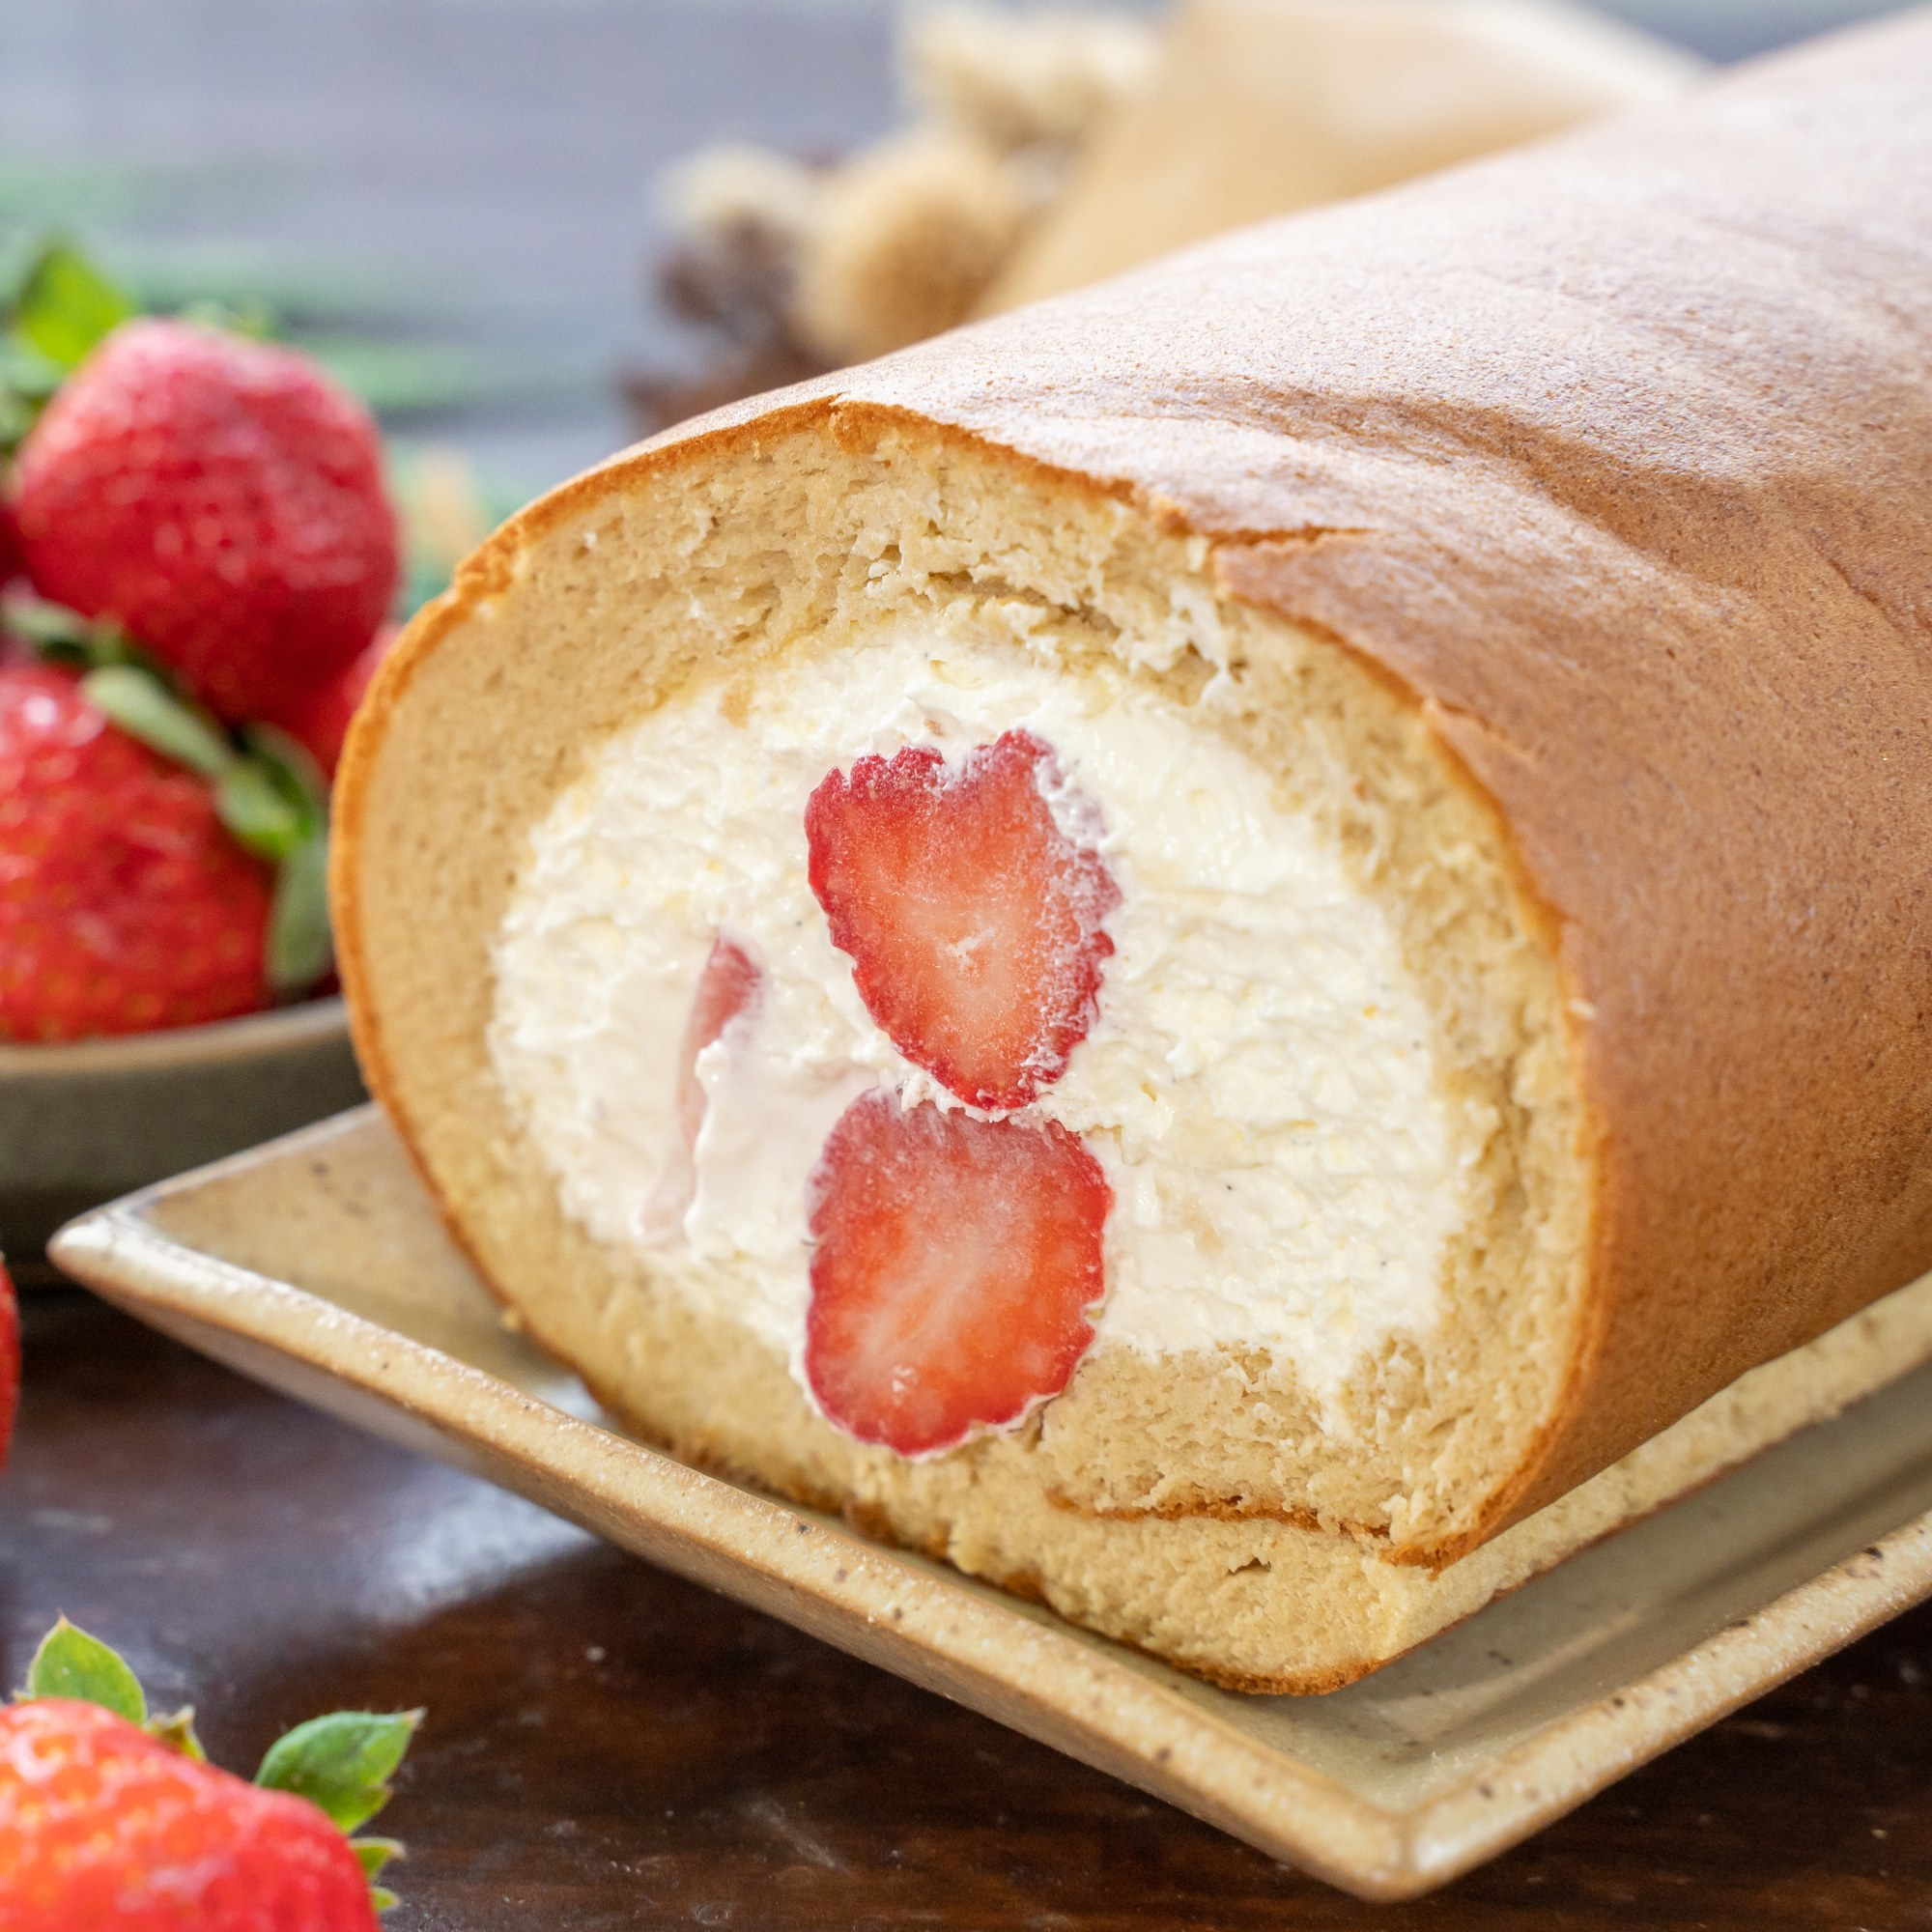 草莓生乳捲 Strawberry cream roll cake